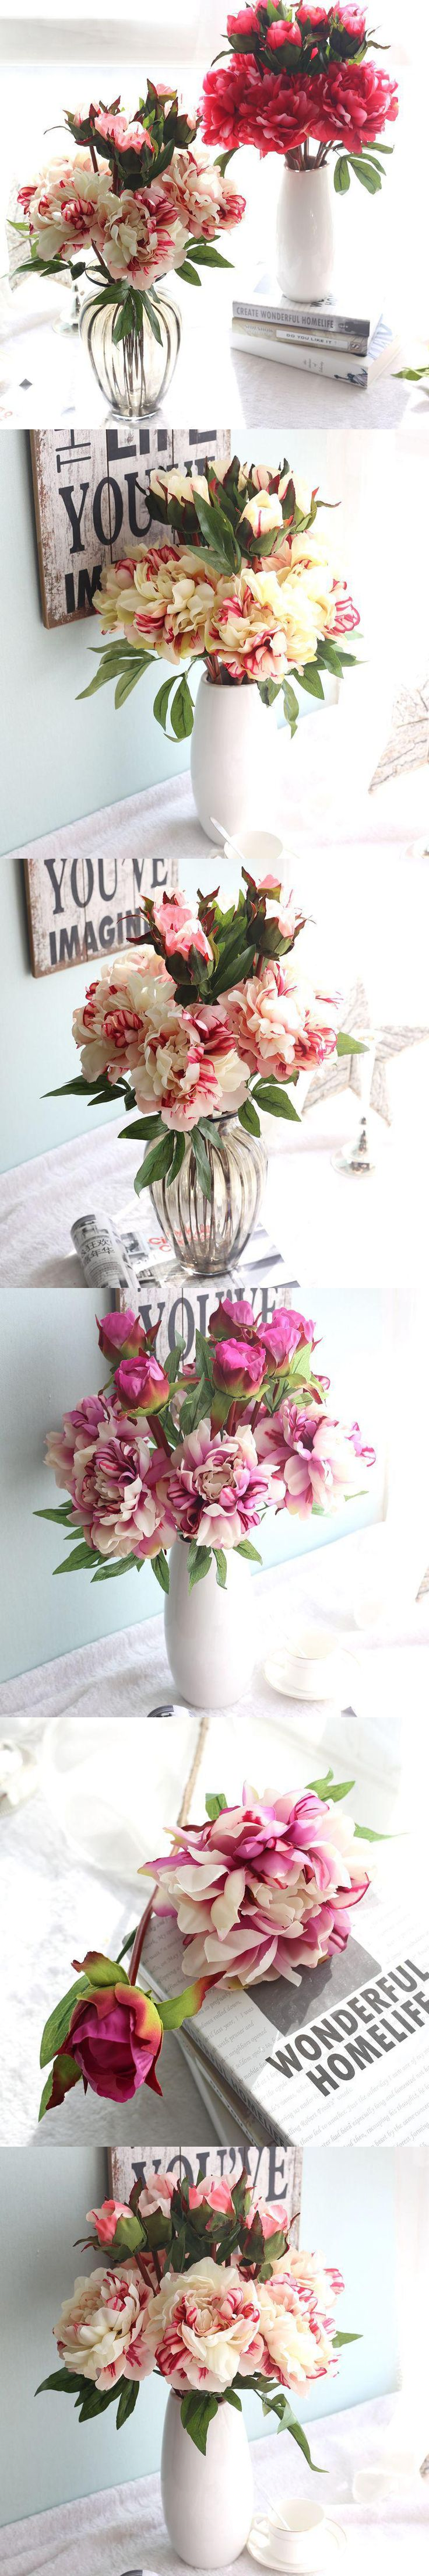 Vivid Artificial Peony Flowers 2 Heads Real Touch Silk Peony Flower&wreaths for Wedding Home Party Decoration